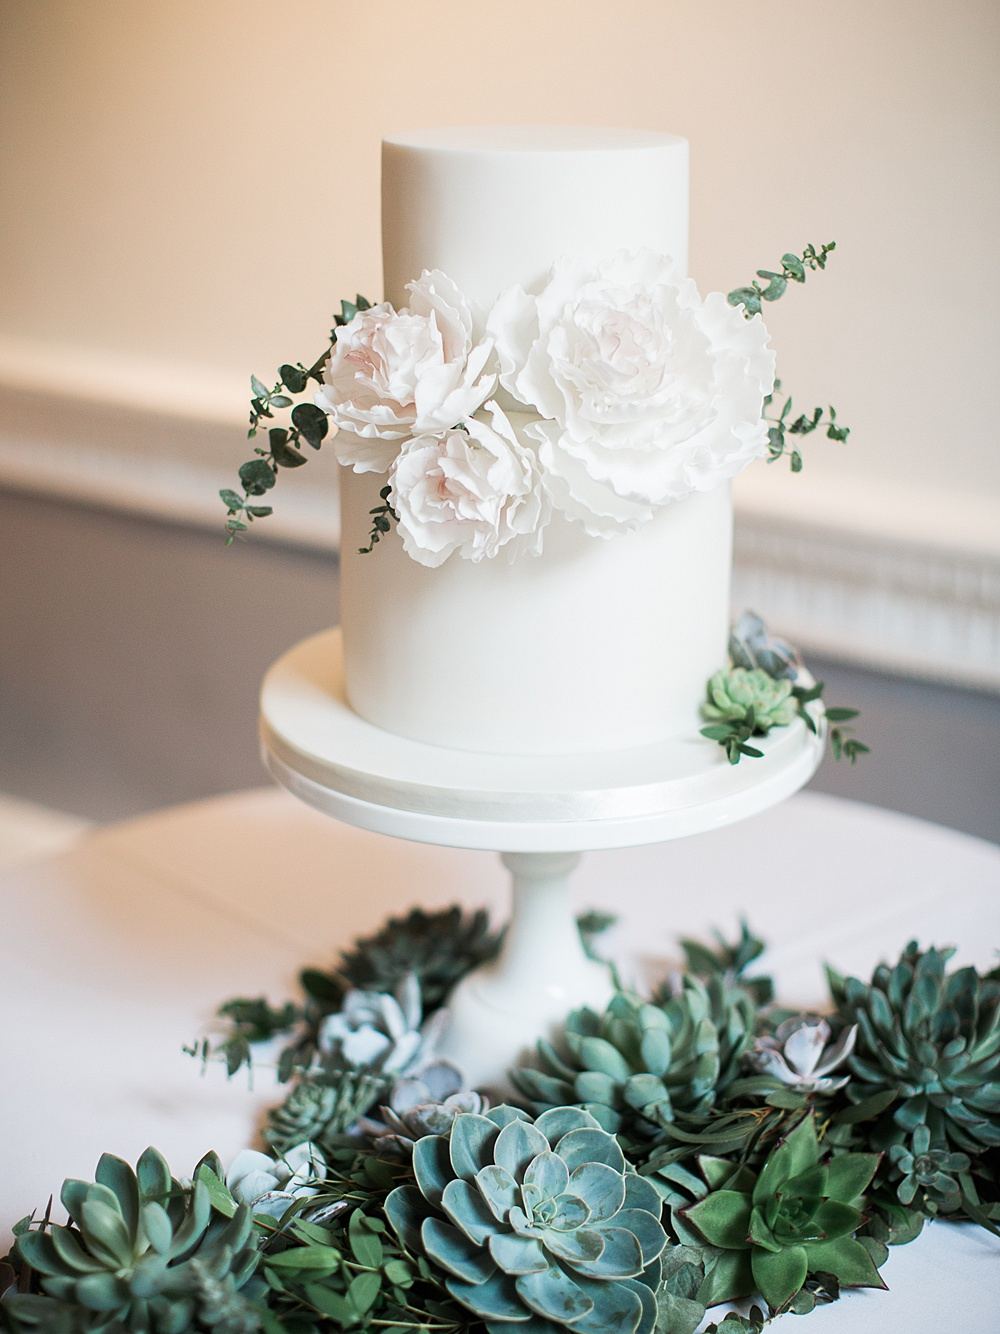 Elegant White Green Gold Wedding With Succulent Decor At Ica London